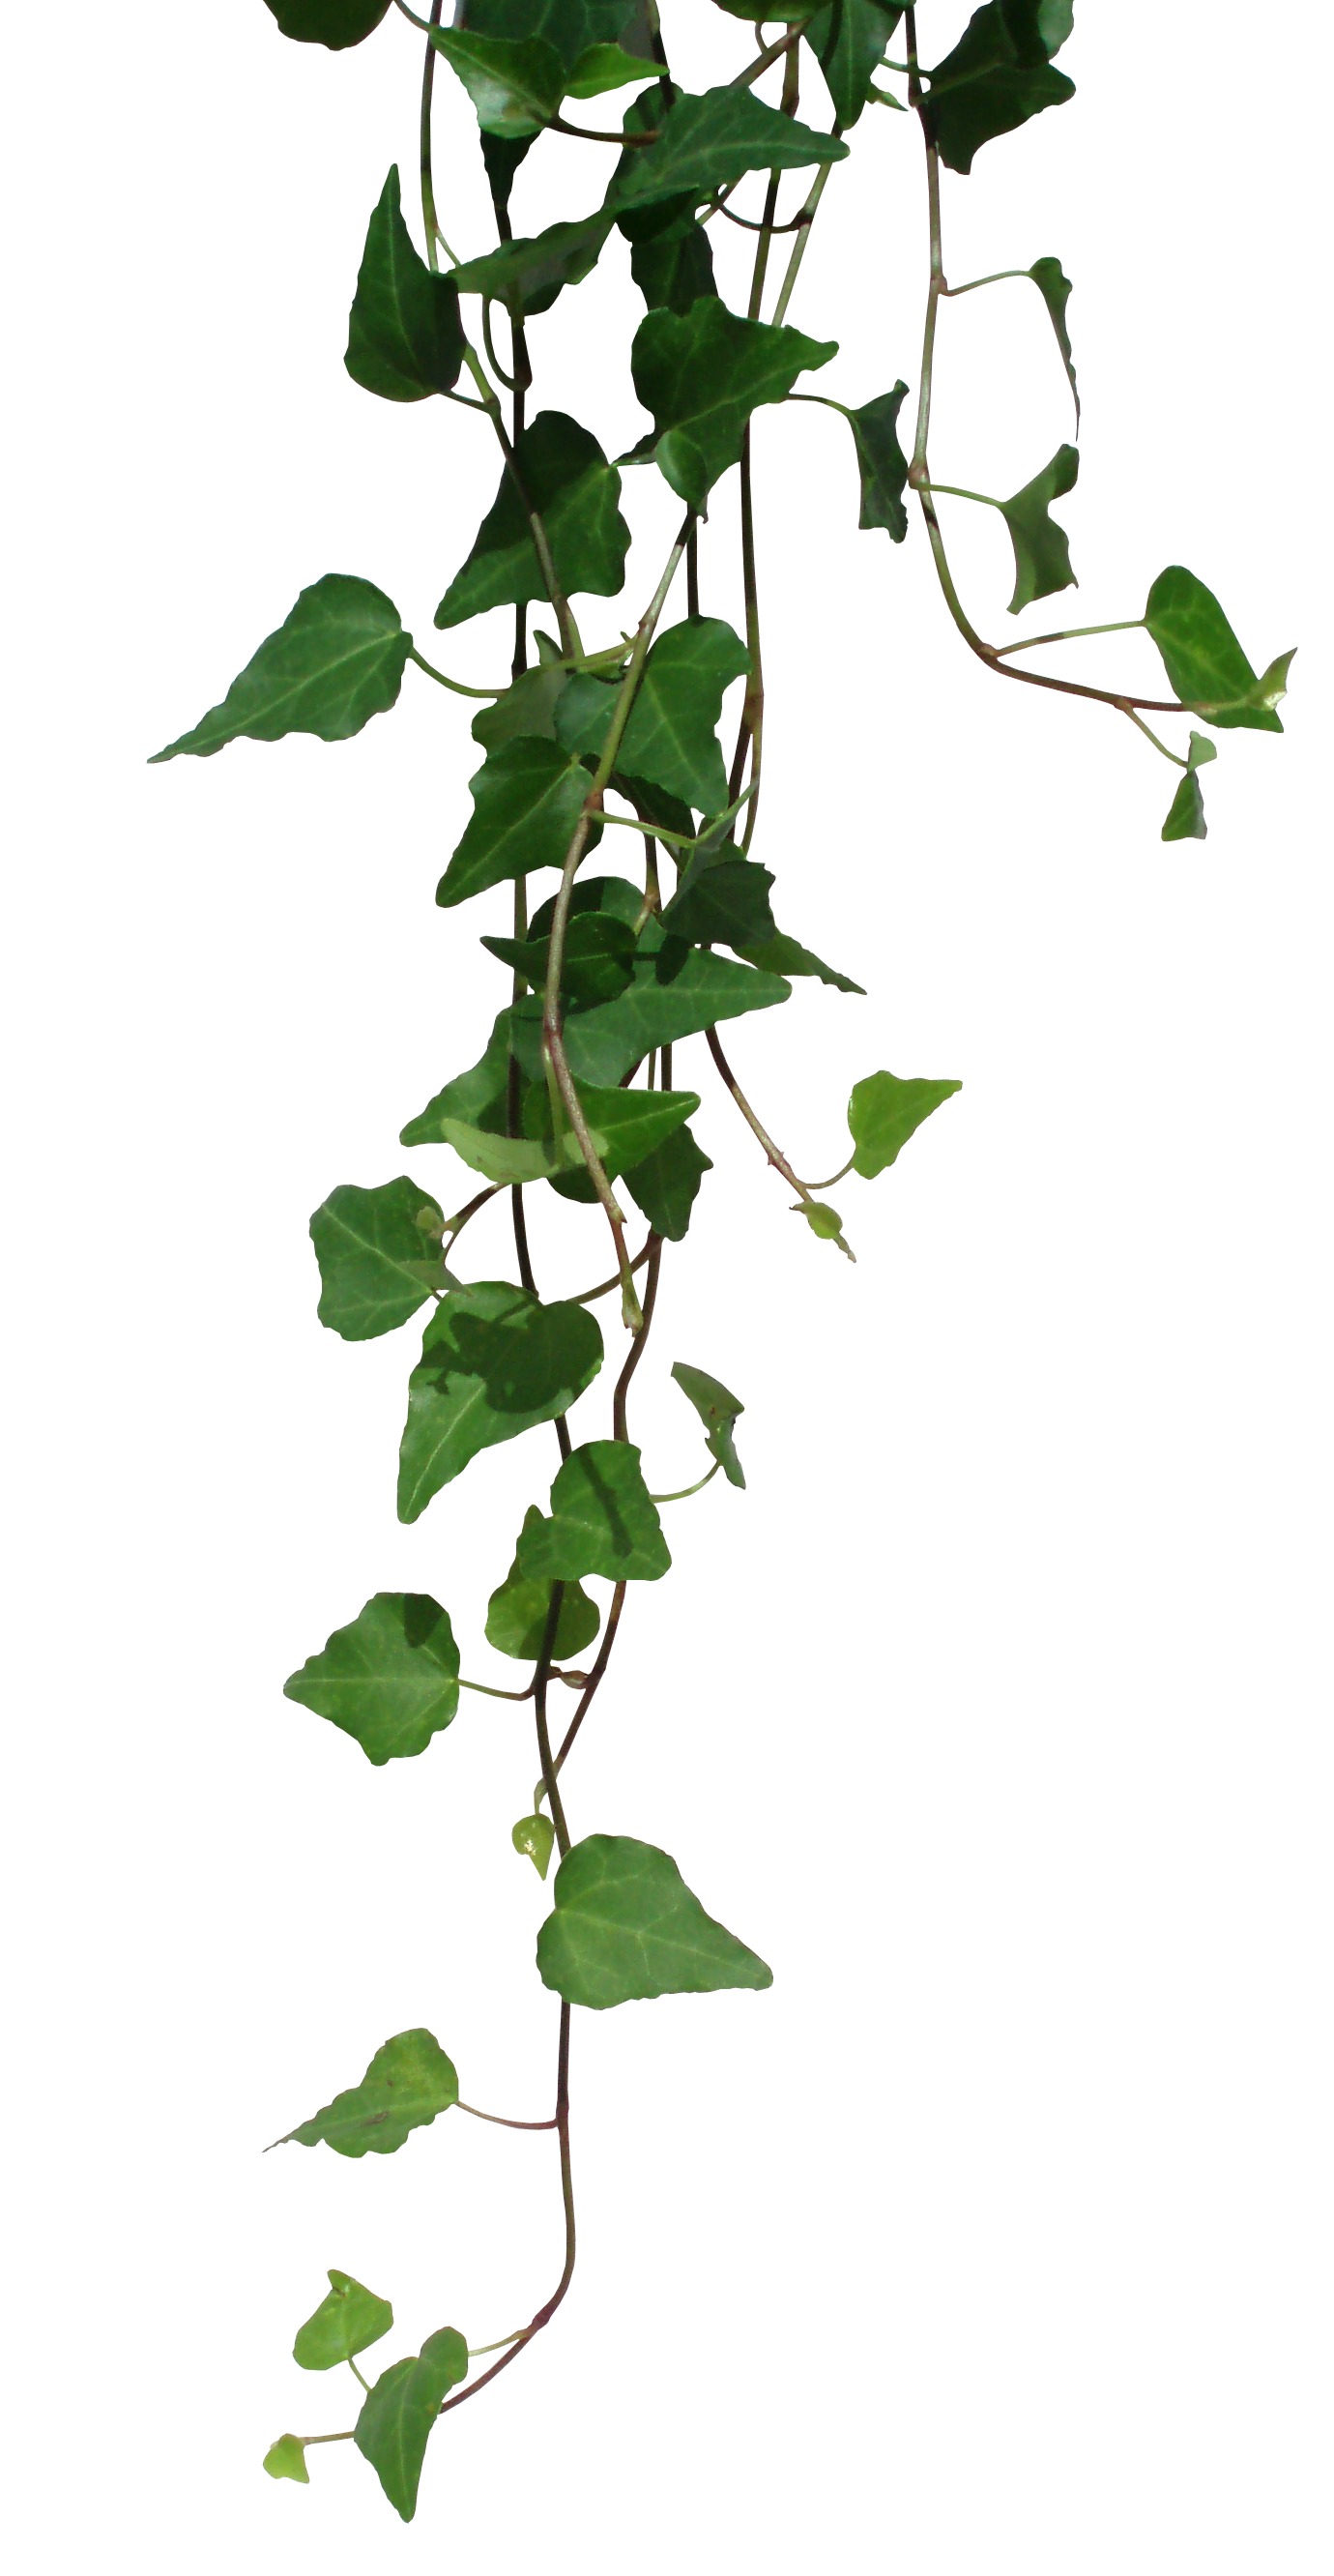 jpg royalty free stock Serenity clipart leaf vine